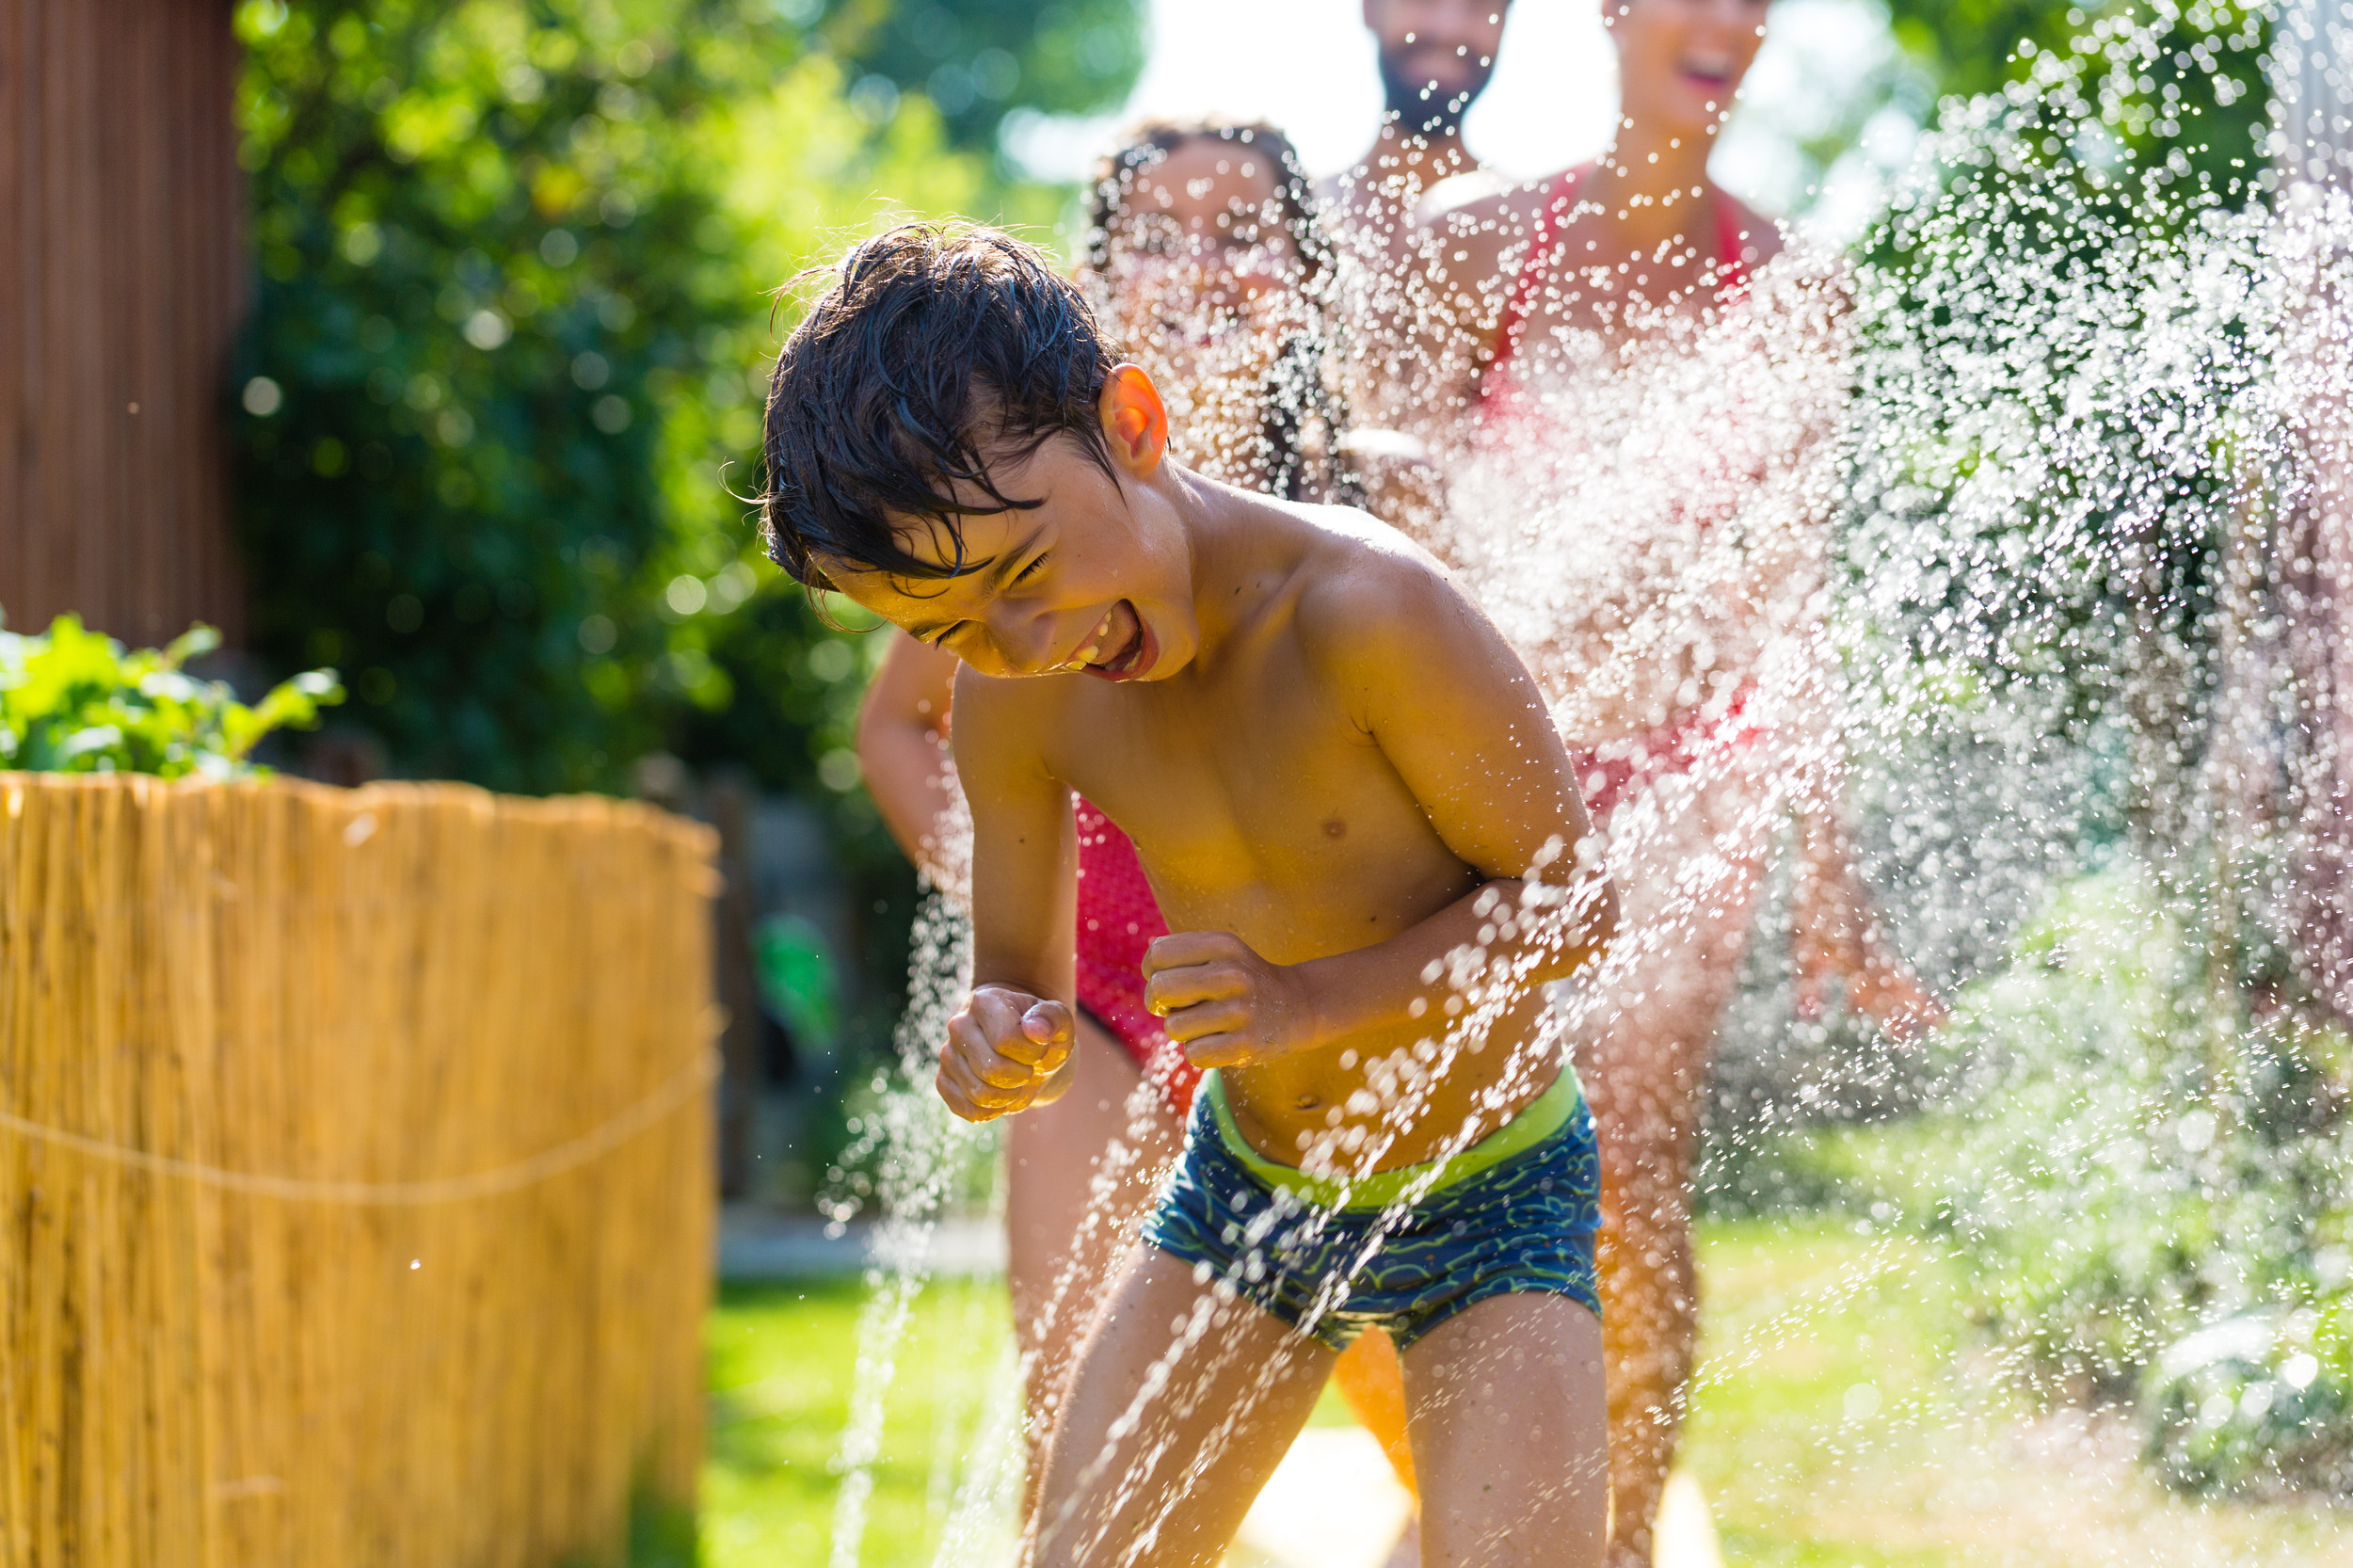 How to make the end of summer better and safer for kids